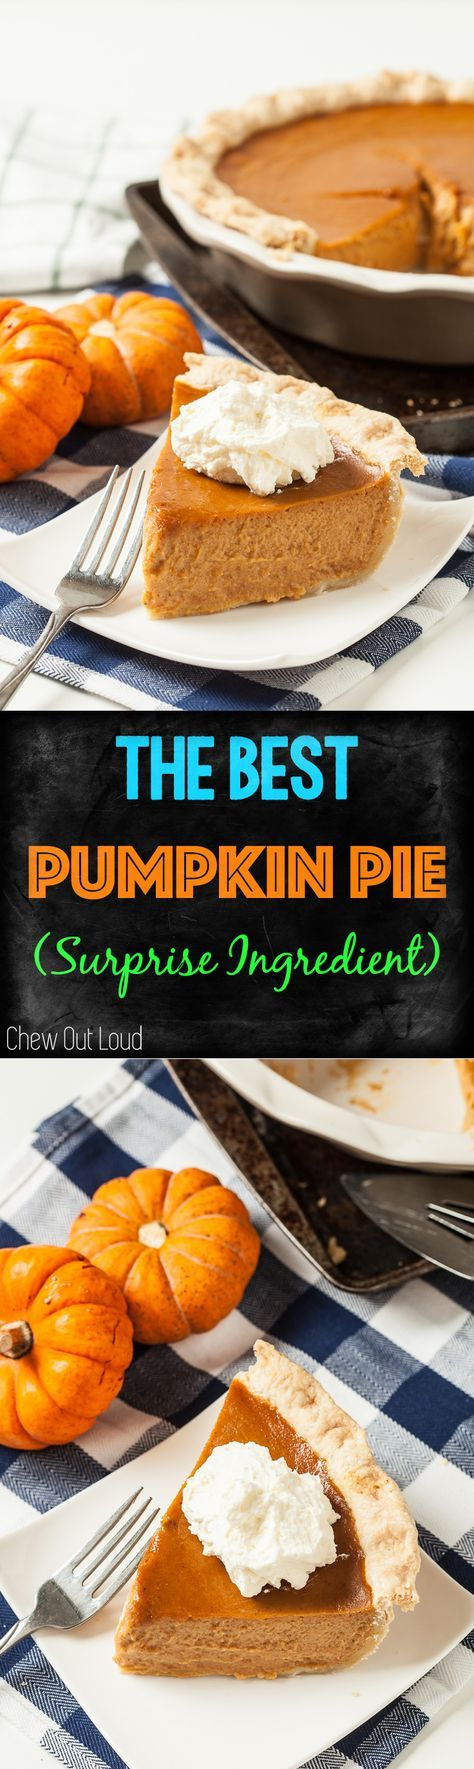 The BEST Pumpkin Pie Recipe for the holidays!